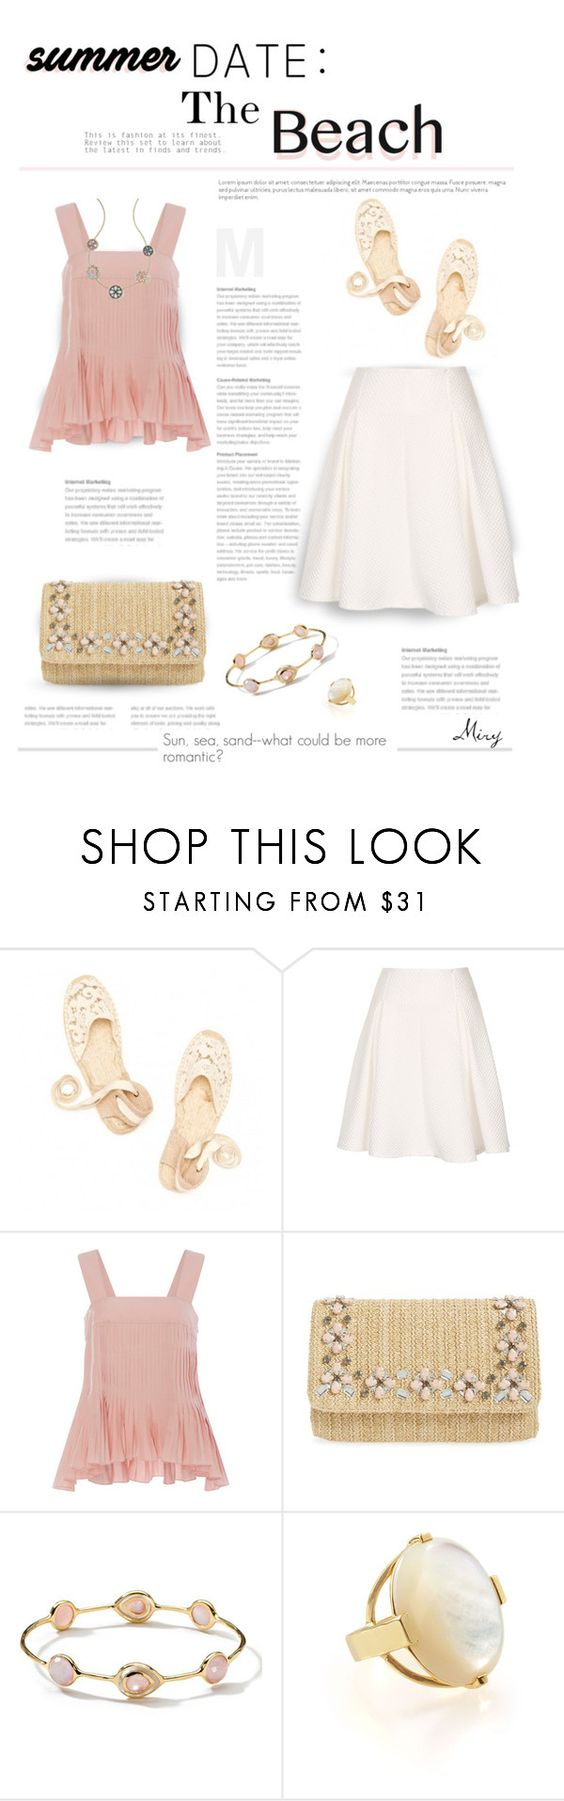 """""""Summer Date: The Beach"""" by thewondersoffashion ❤ liked on Polyvore featuring Soludos, TIBI, Glint and Ippolita"""